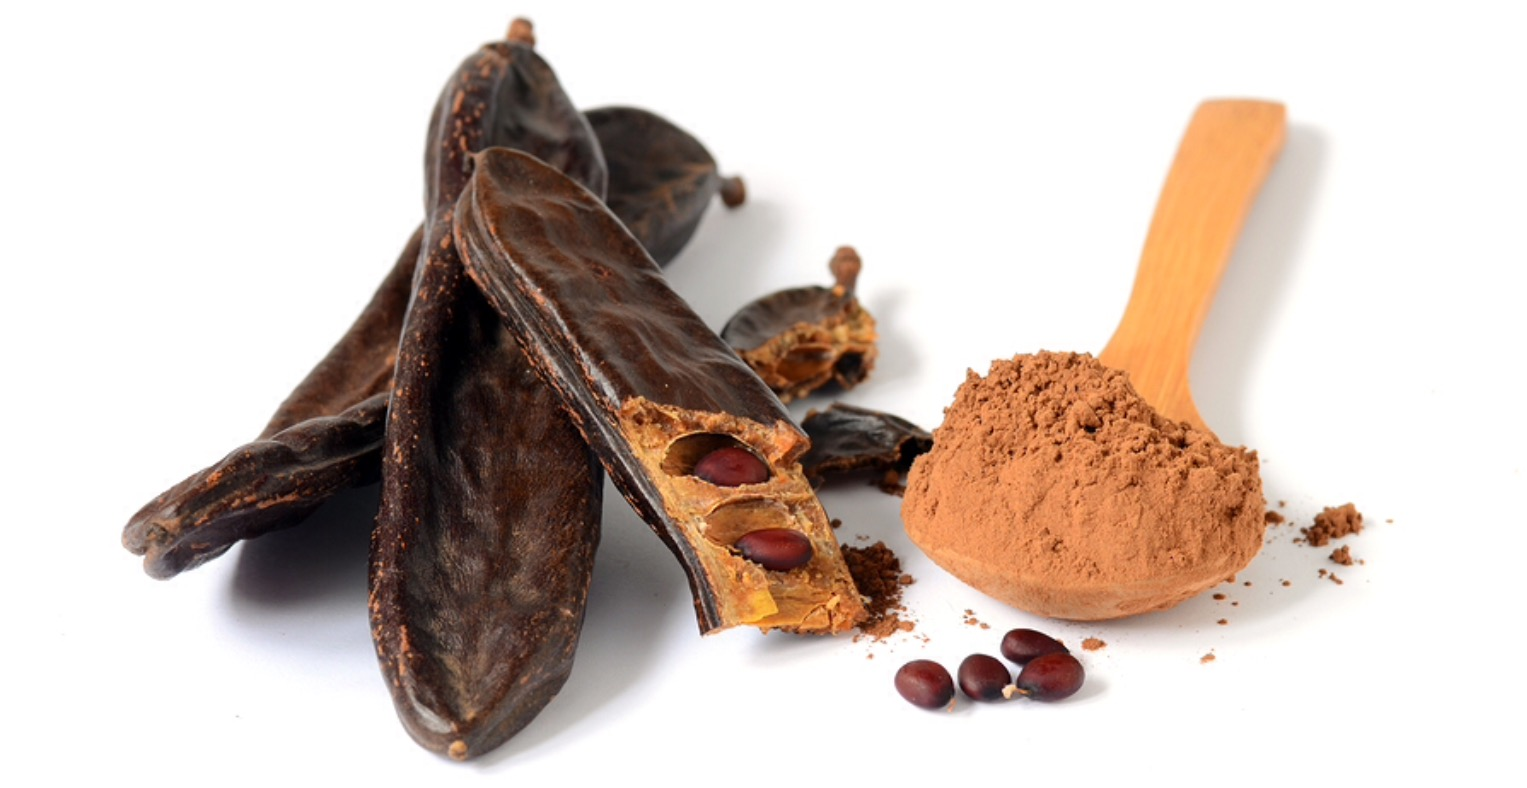 Adventists forced to sign 14-page compliance document professing love for carob